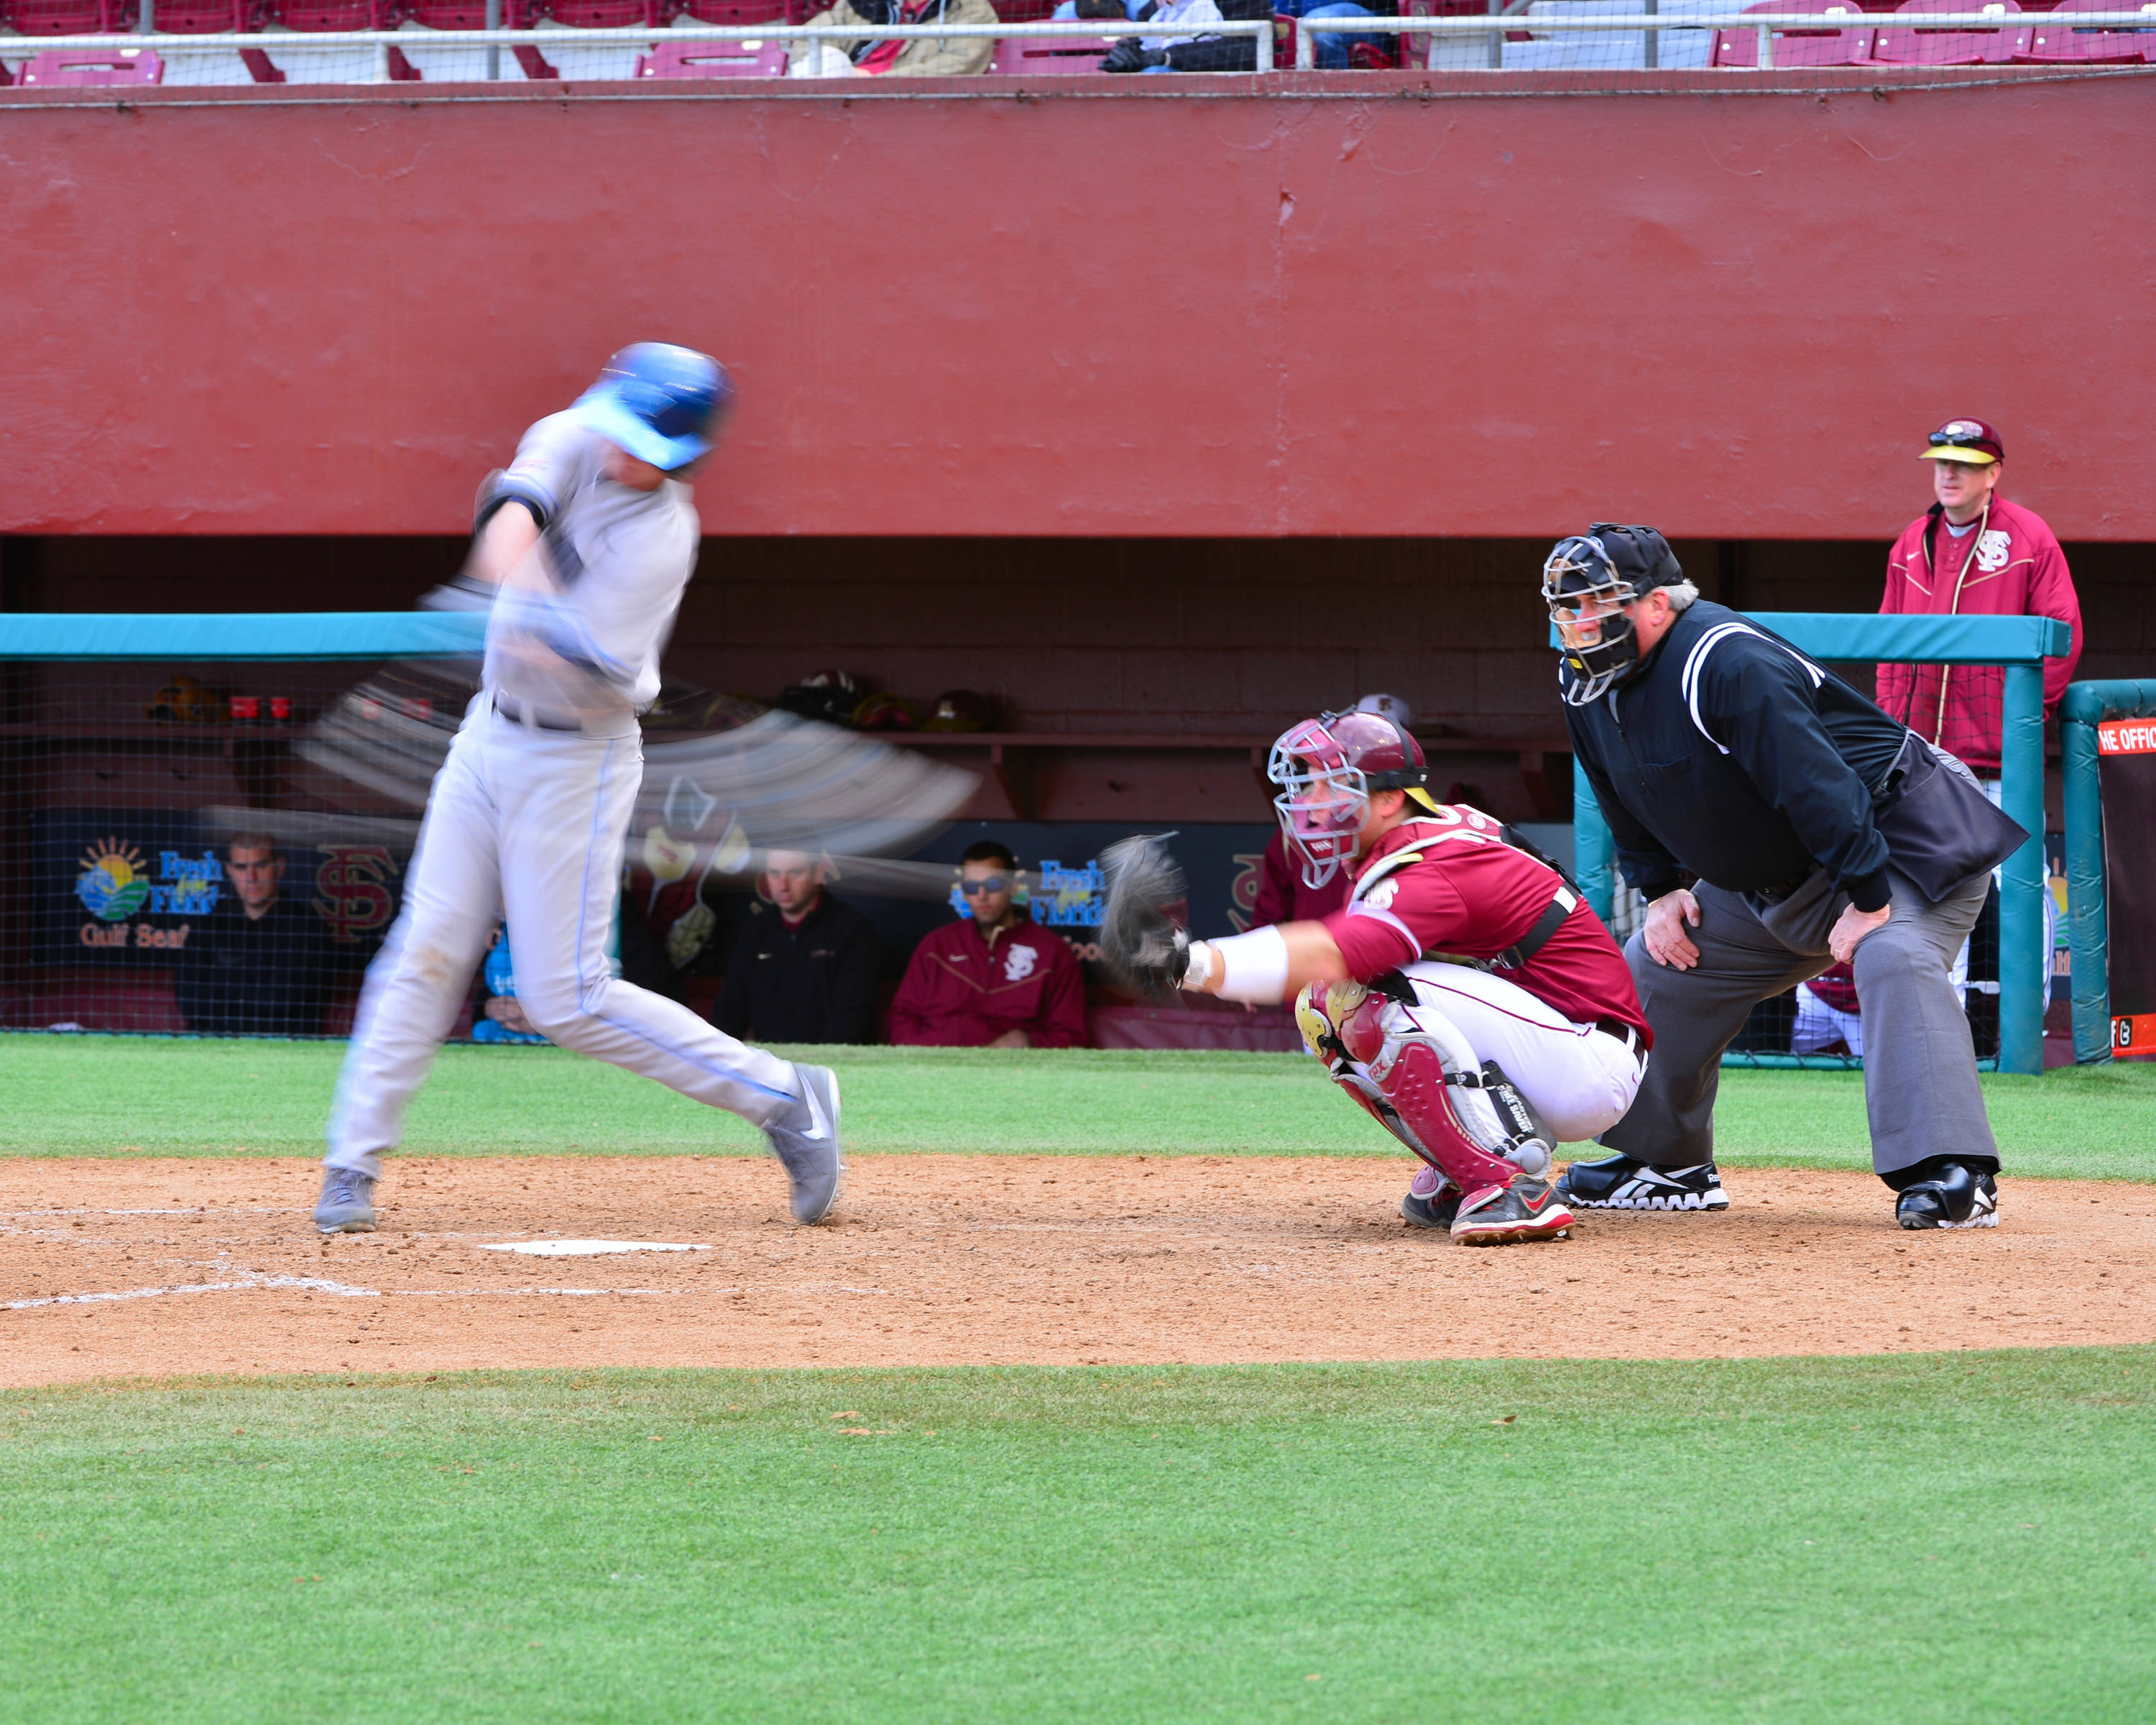 Stephen McGee is on the receiving end of one of 14 strikeouts on Saturday.